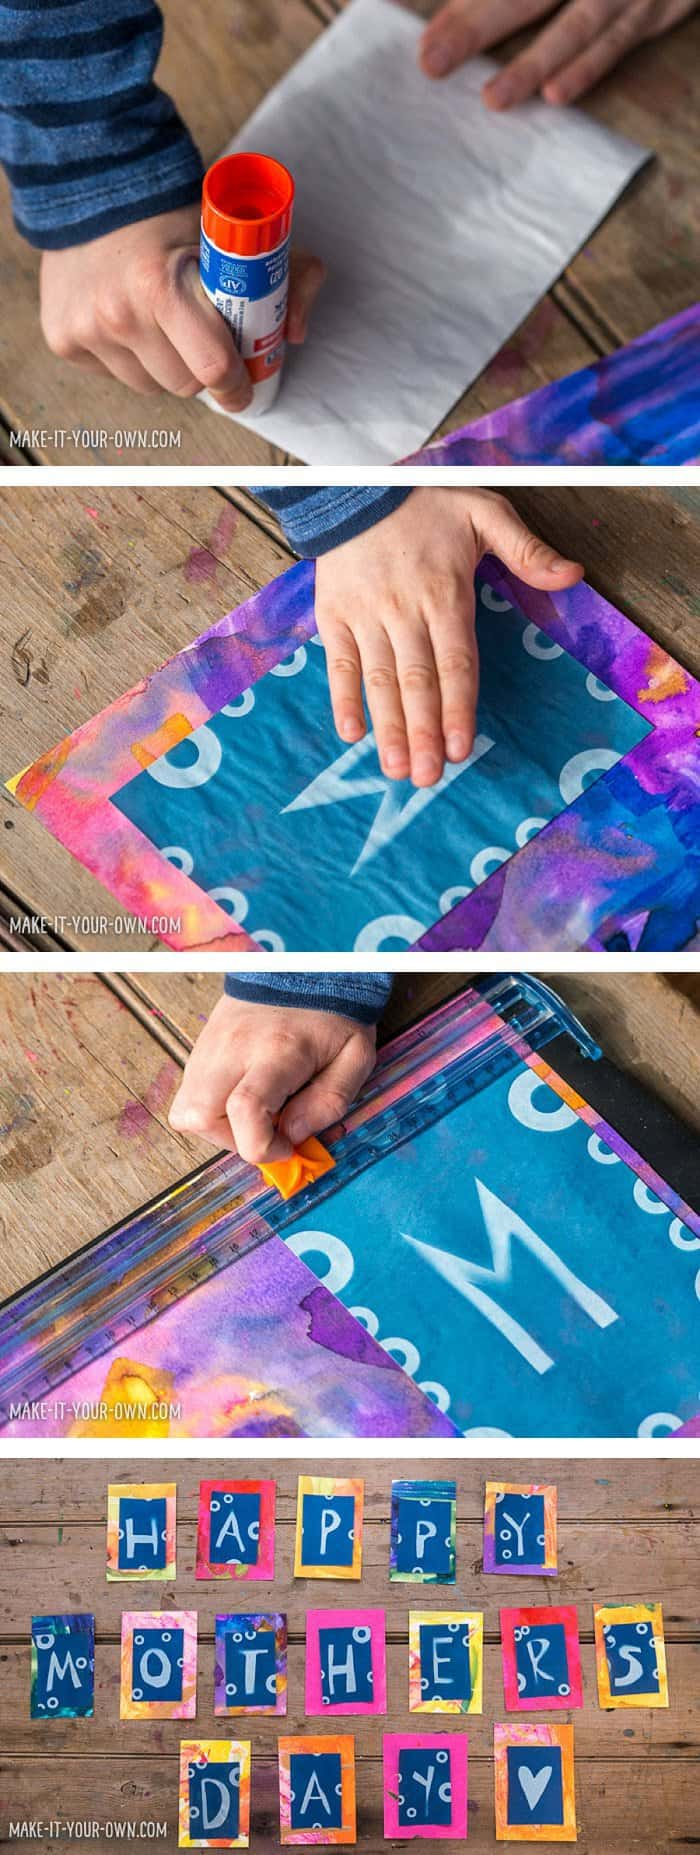 Solar Print Art for Children: Make a Handmade Mother's Day Garland *This educational, DIY kids' craft is so sweet. Love the final product with the beads and string attached!